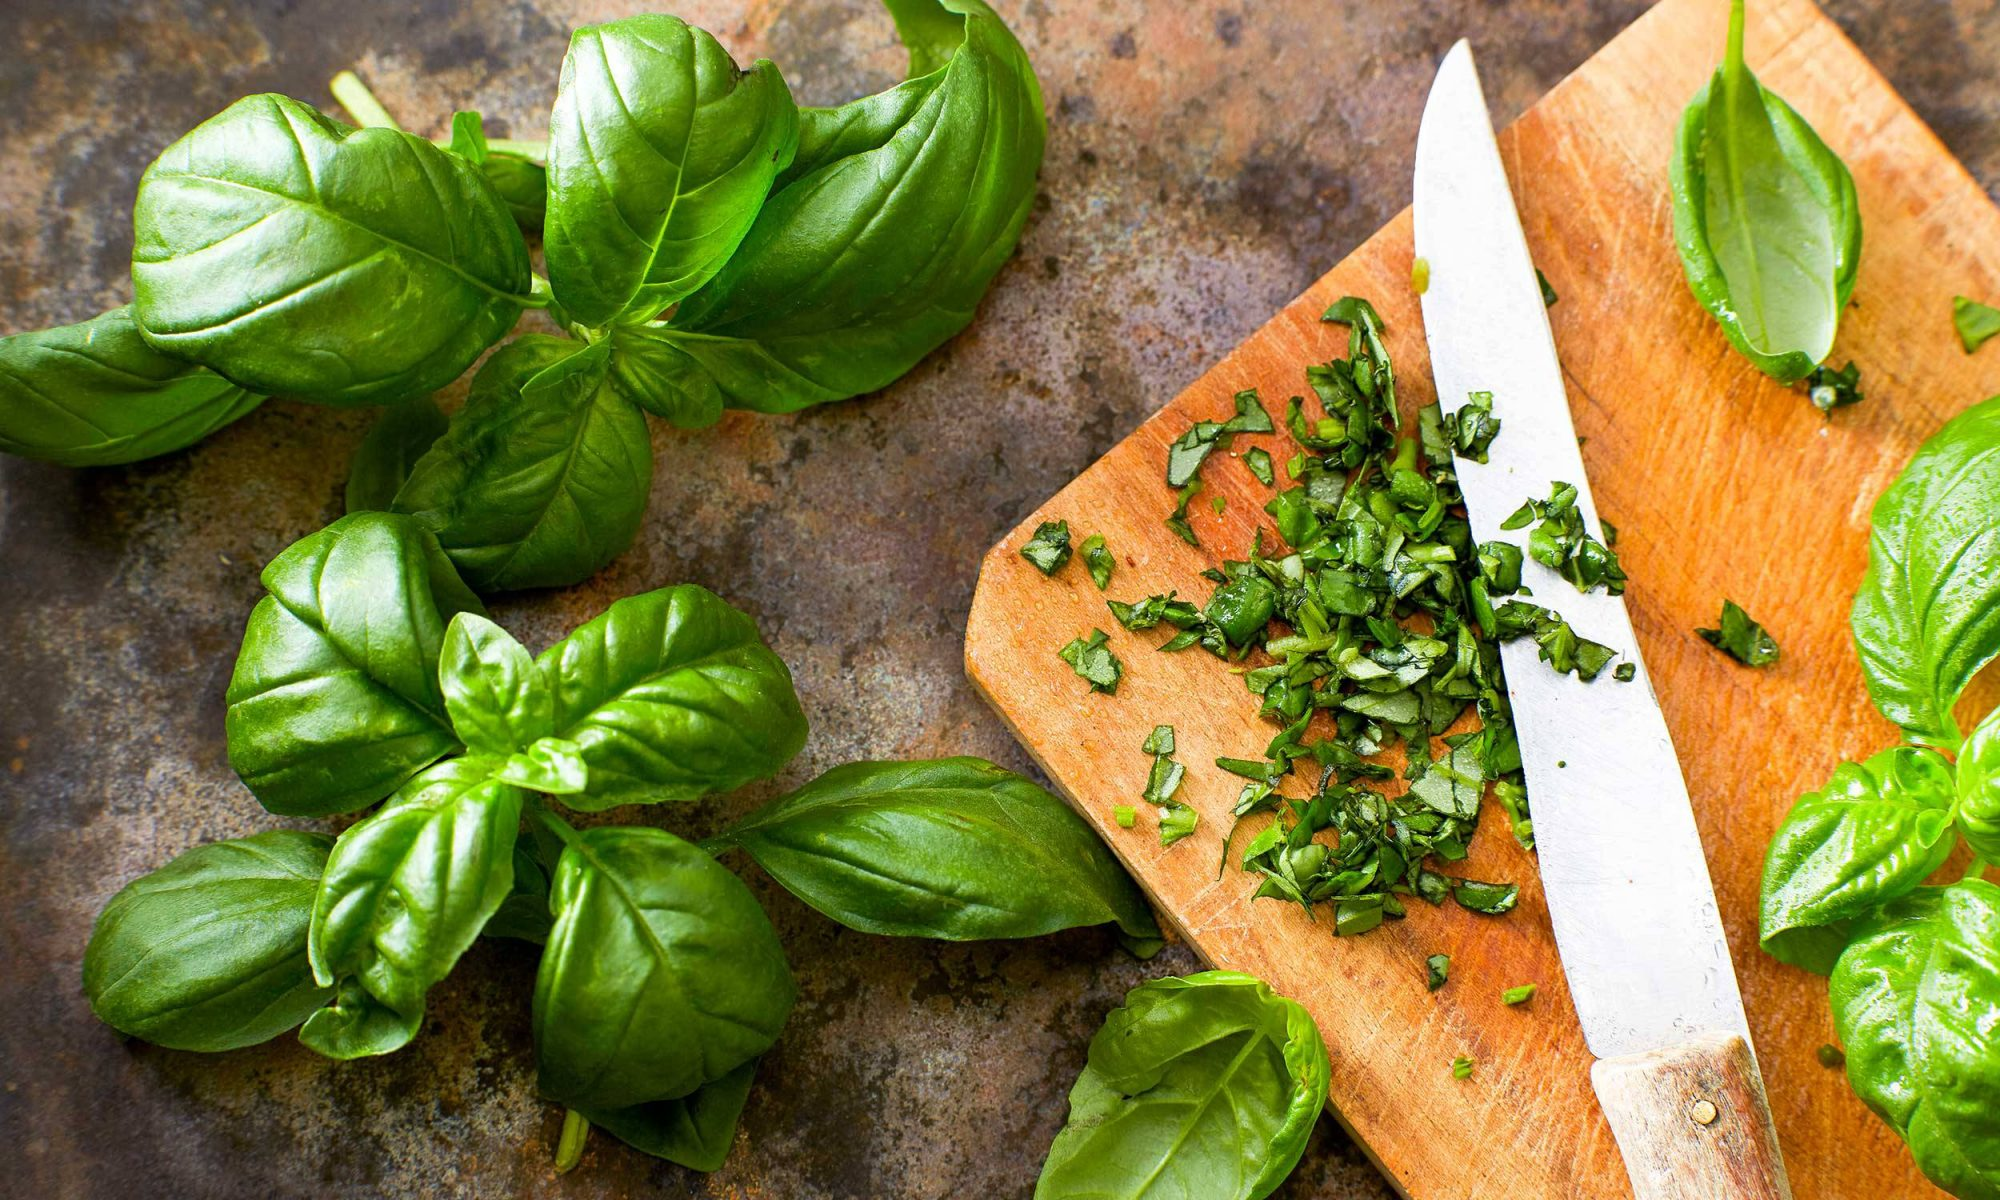 EC: How to Store Basil So It Stays Fresh